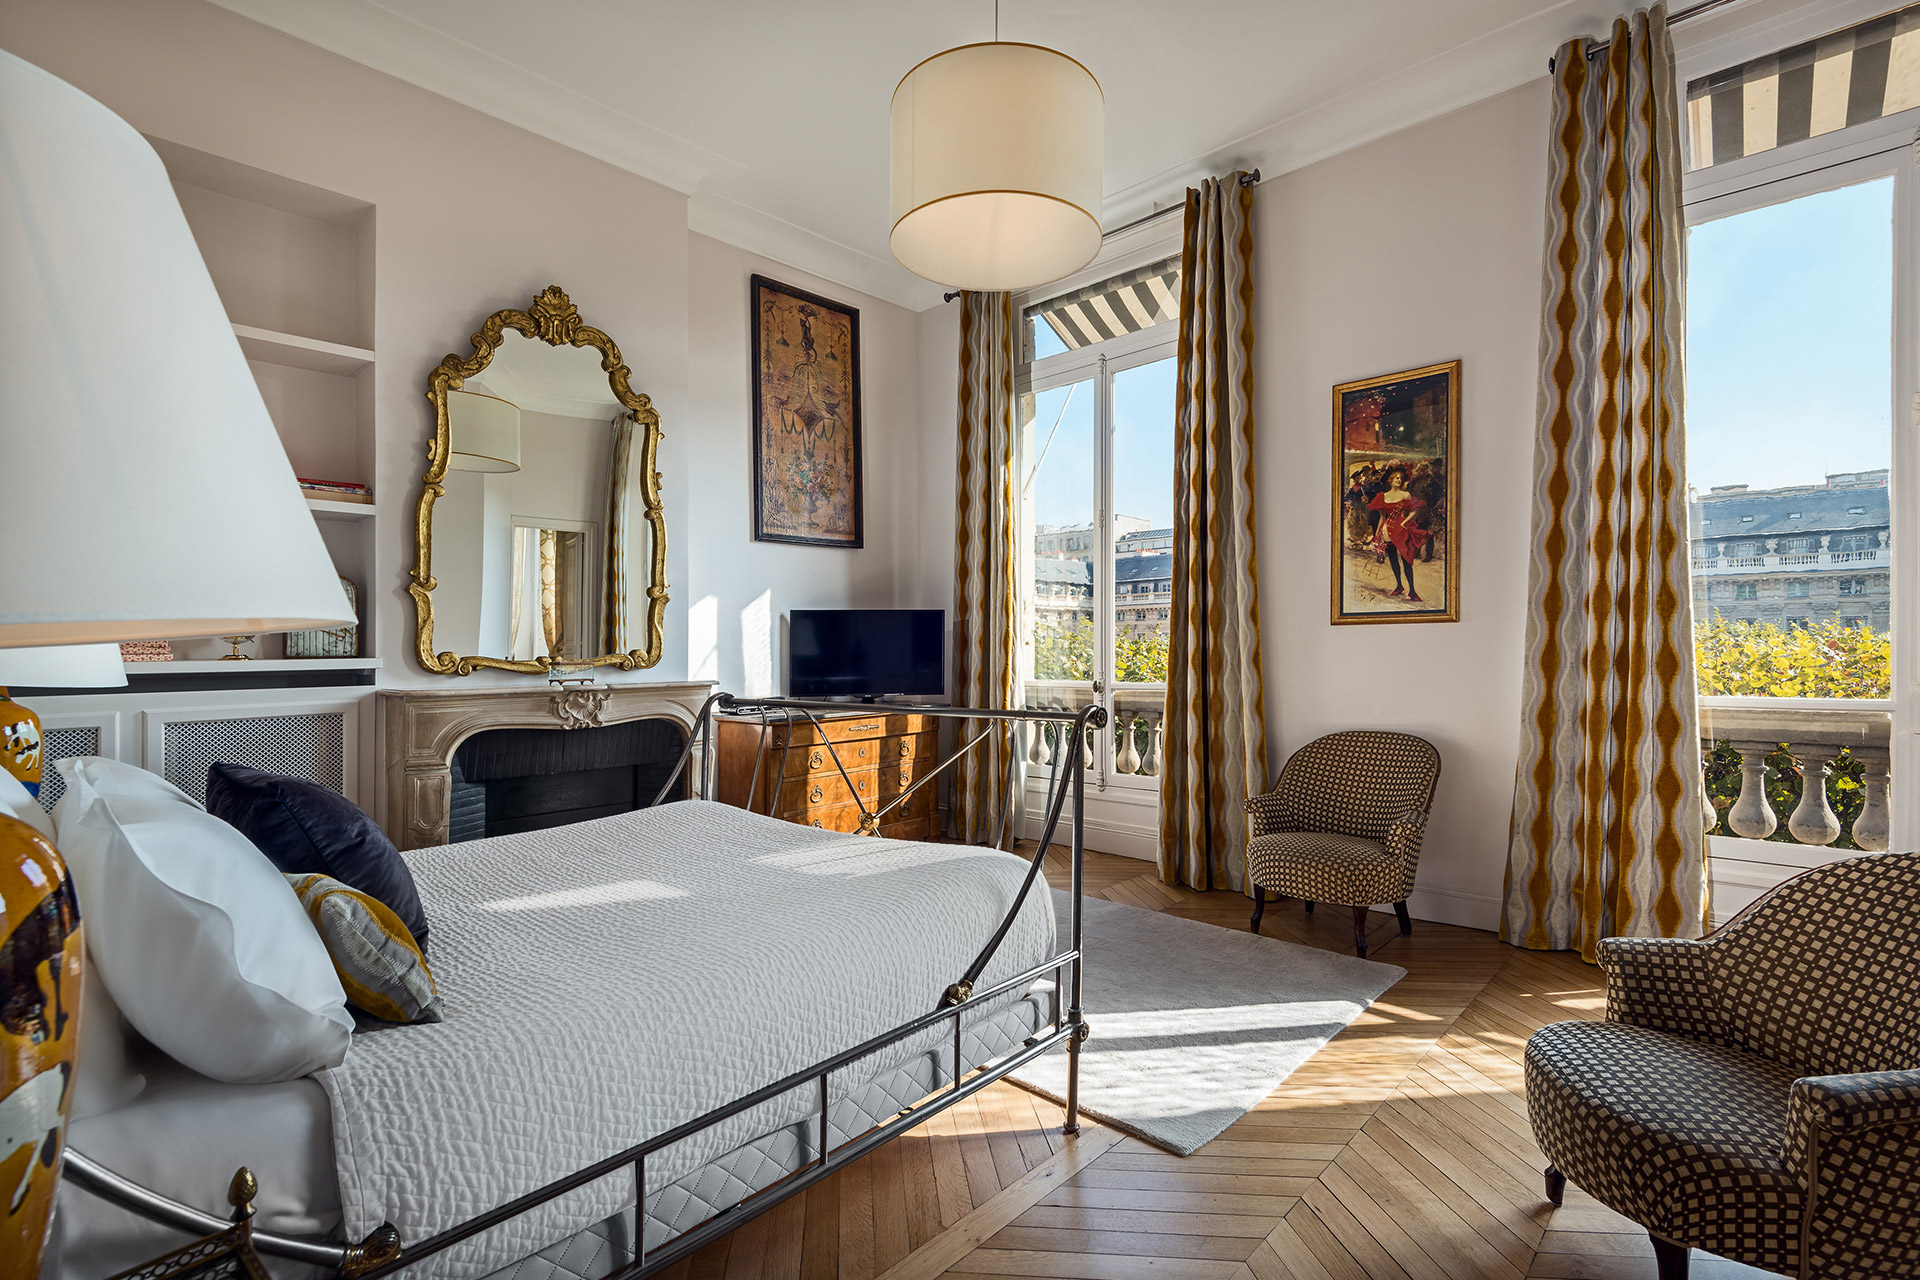 Designed for grandeur in the bedroom of the Chopine vacation rental offered by Paris Perfect